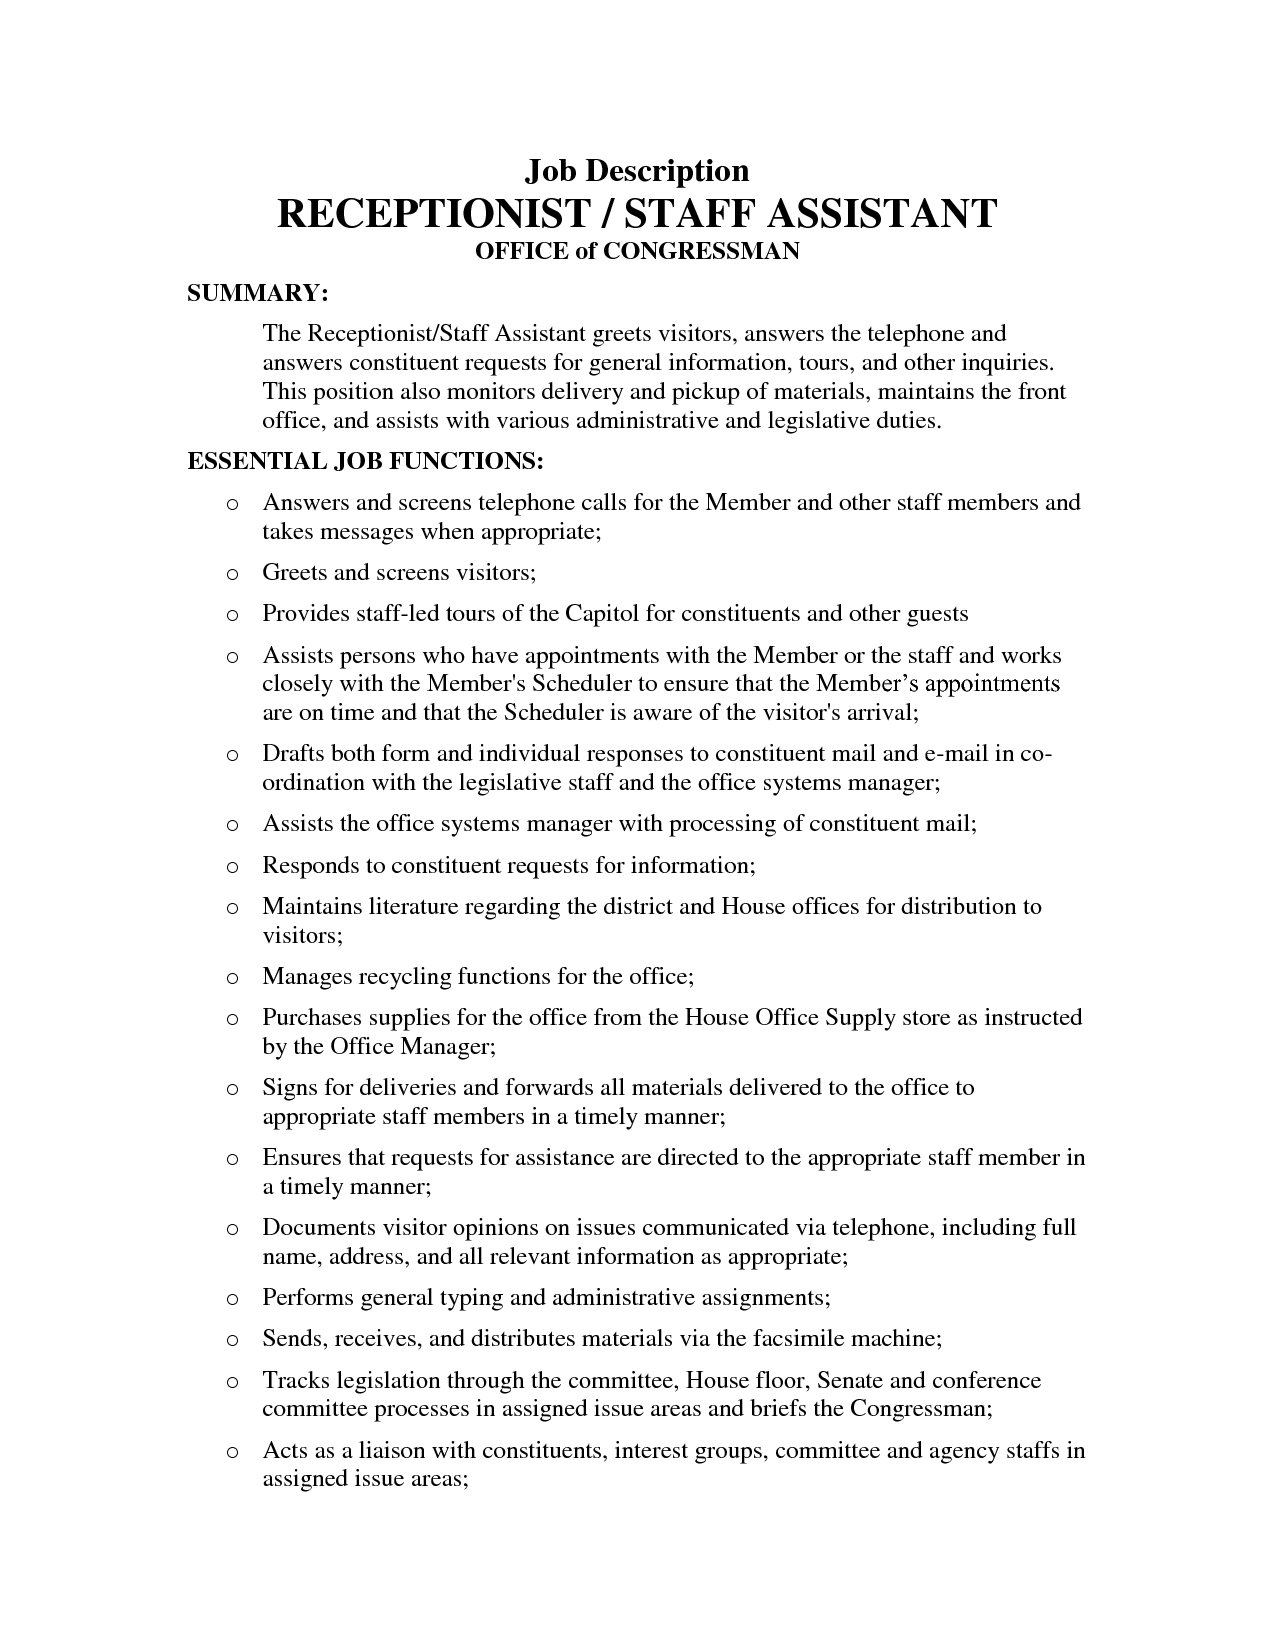 medical assistant job description in a hospital medical assistant